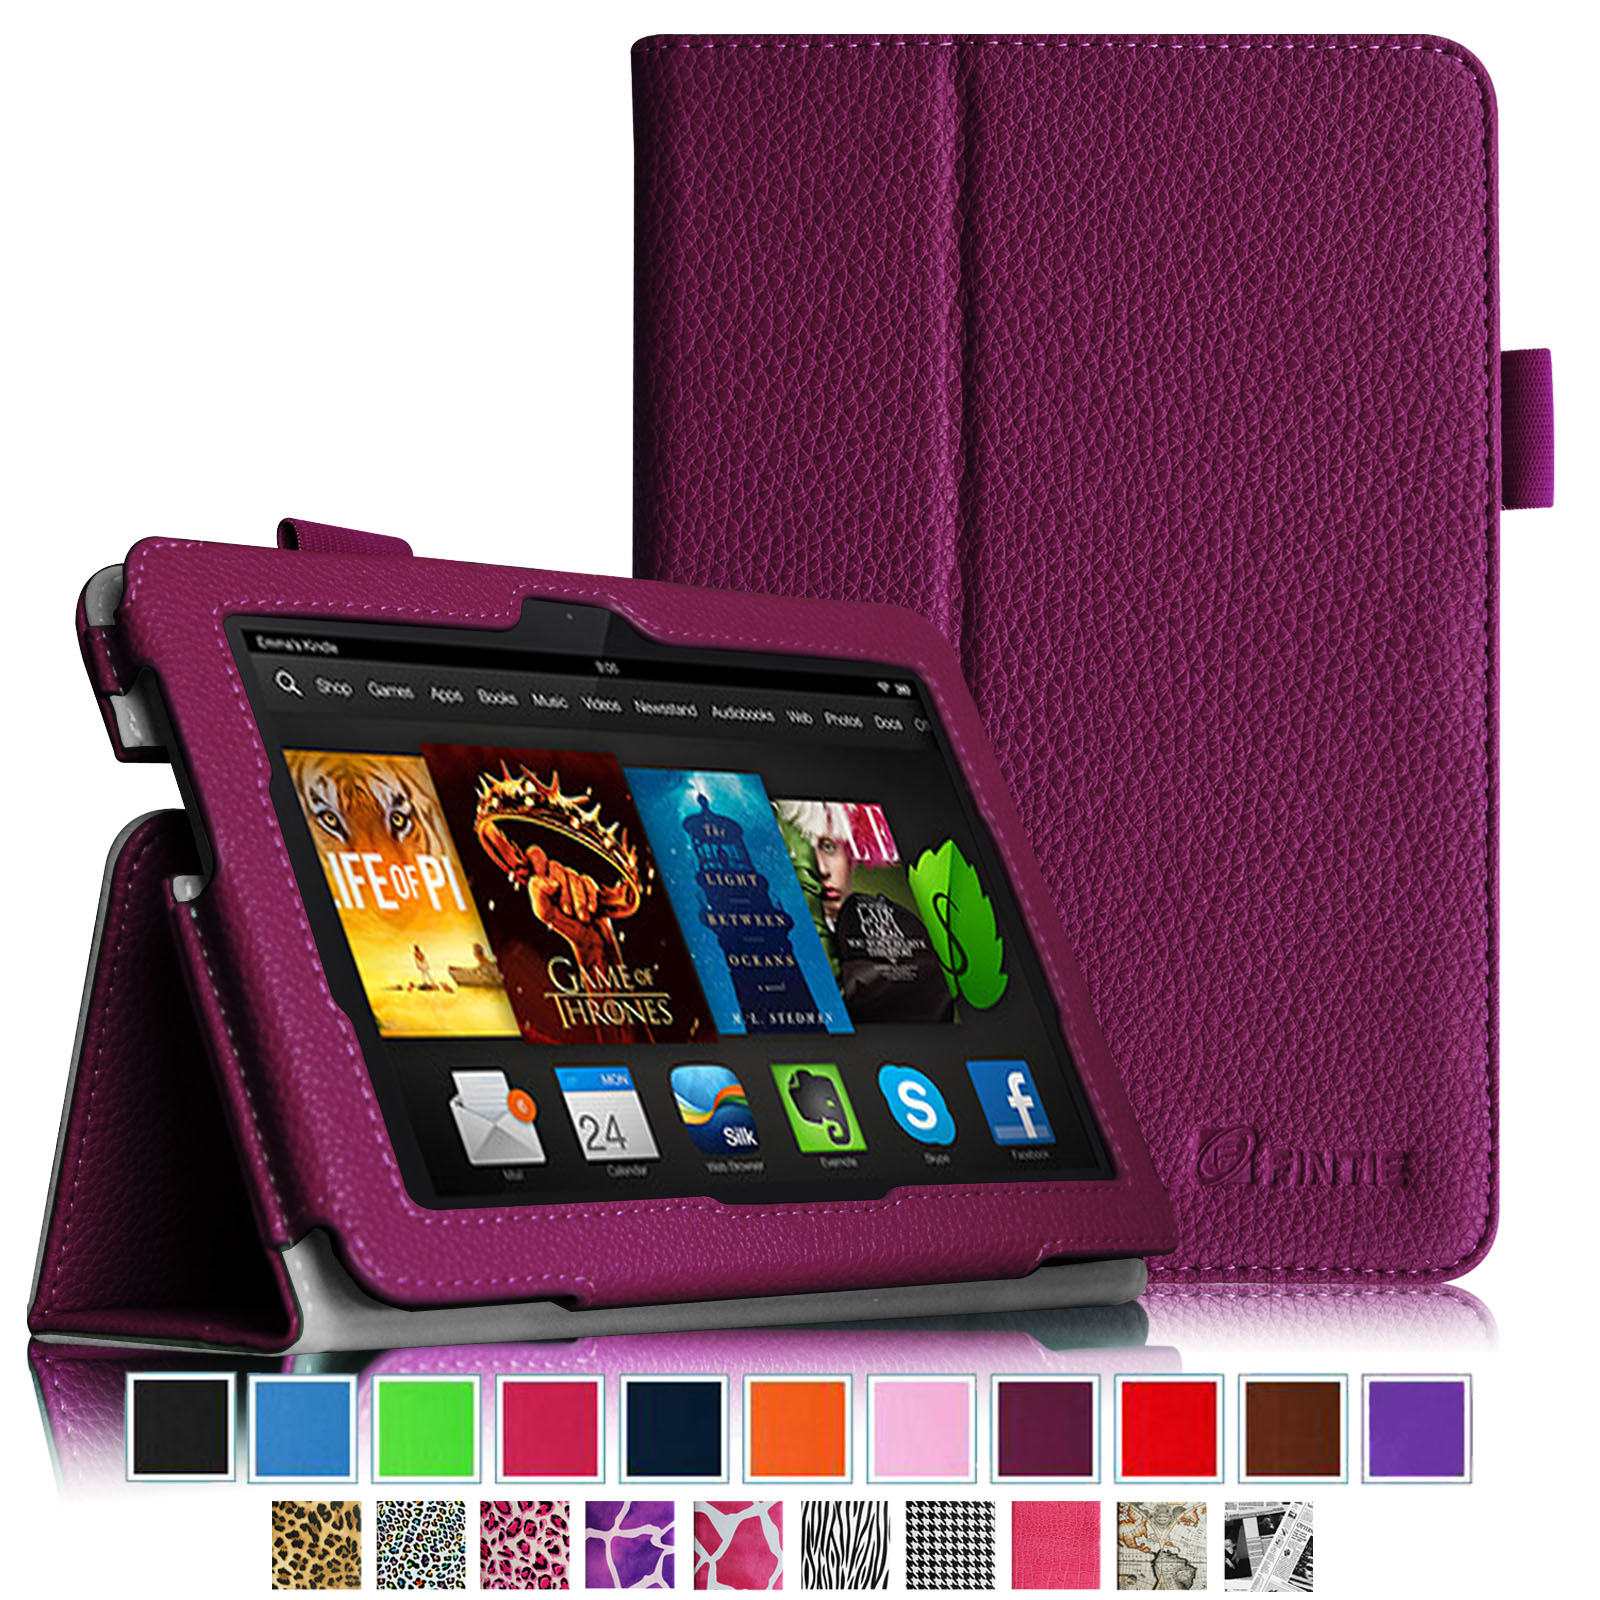 Fintie Folio Case for Kindle Fire HDX 7 - Slim Fit PU Leather Standing Cover with Auto Sleep/Wake, Purple